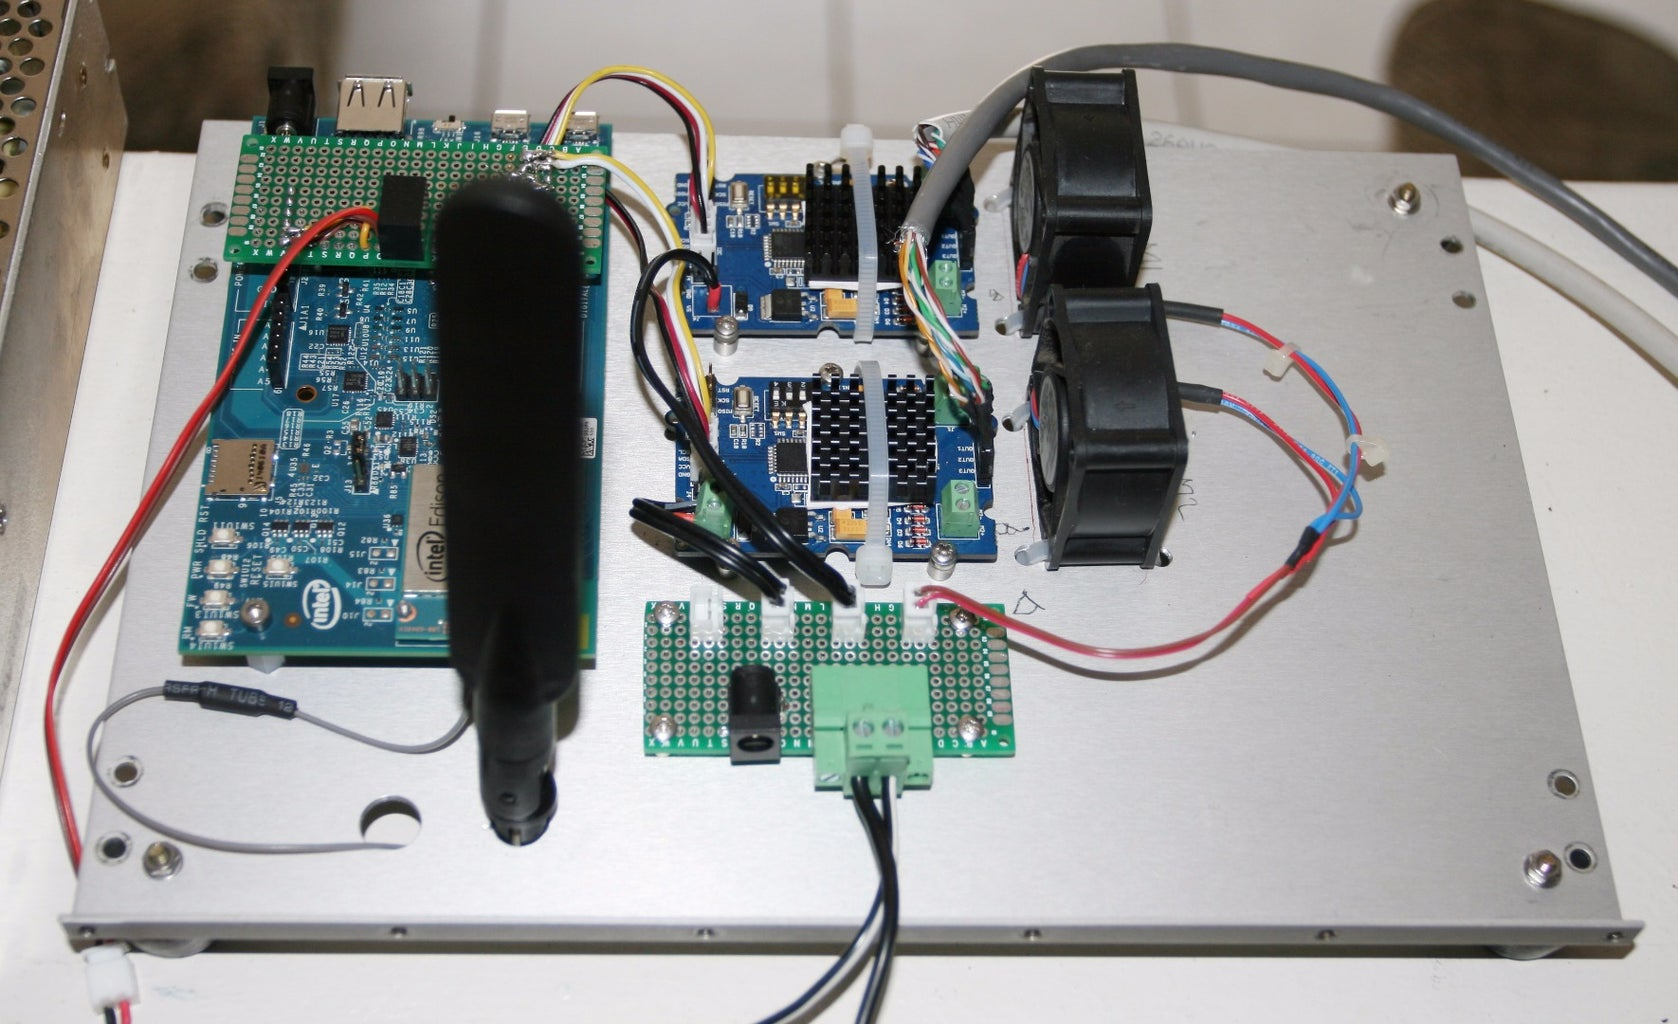 Connect Motor Drivers, Supply Power